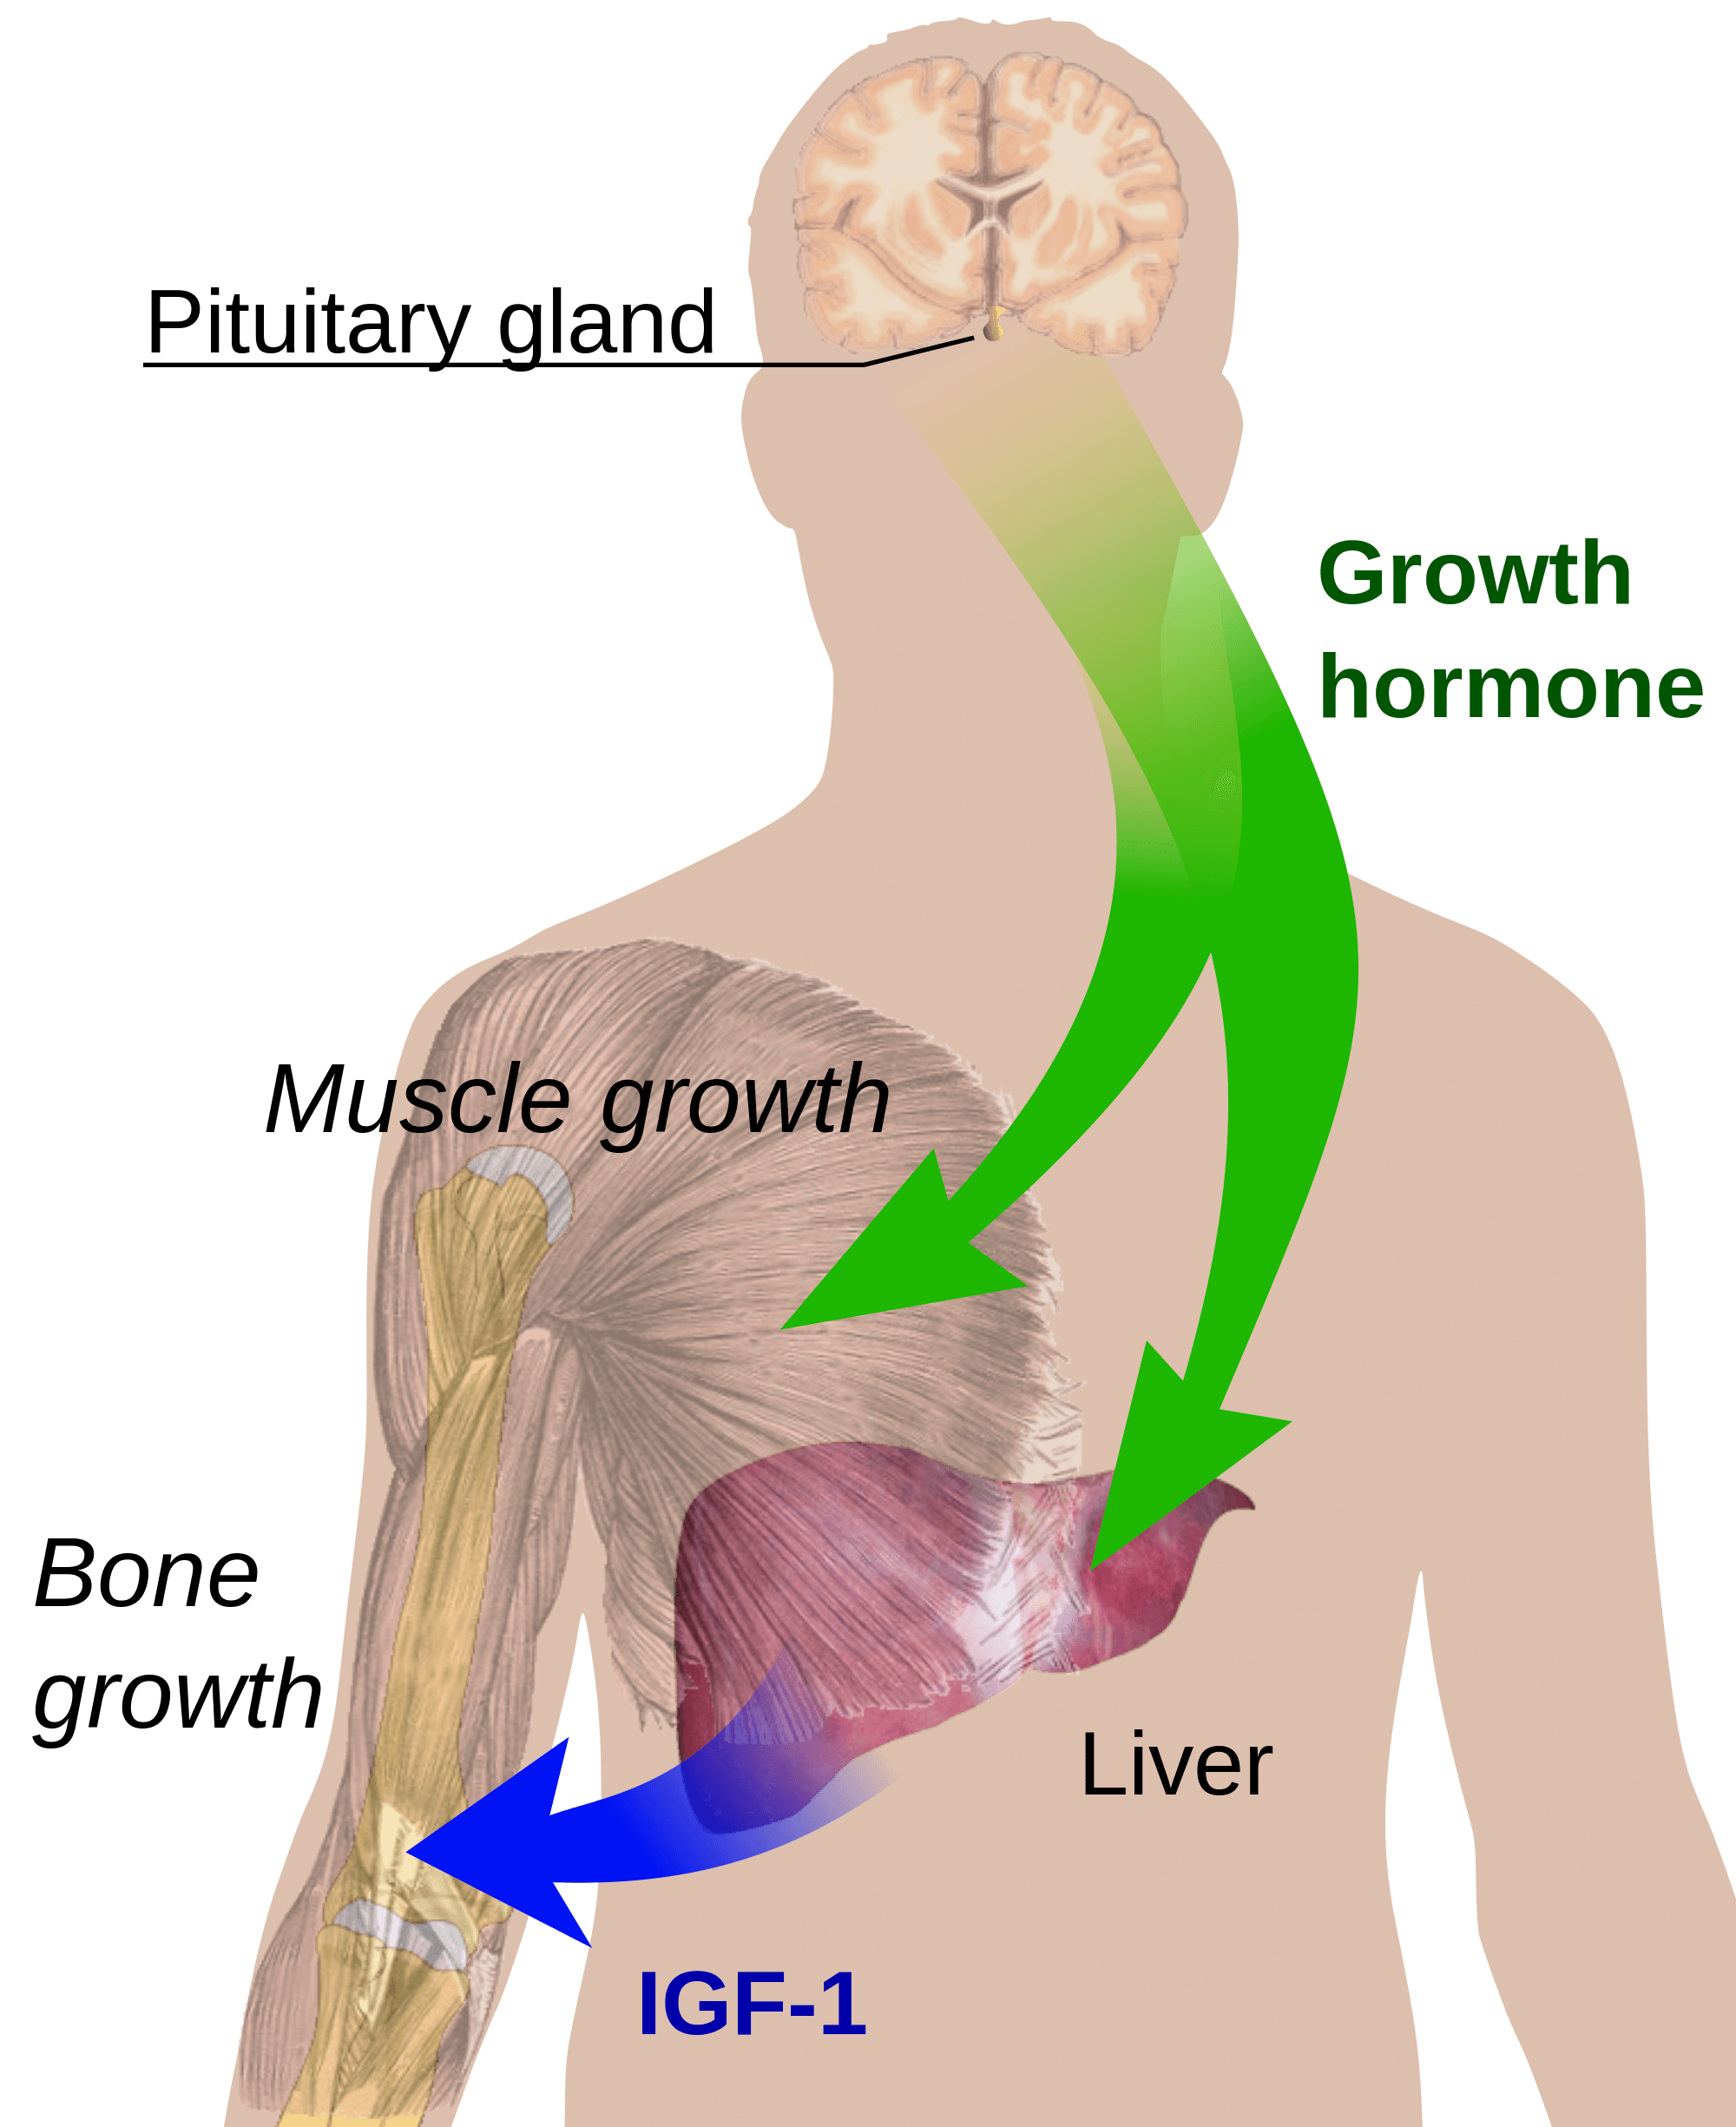 growth hormone, growth hormone replacement therapy, growth hormone deficiency, growth hormone symtoms, growth hormone side effects